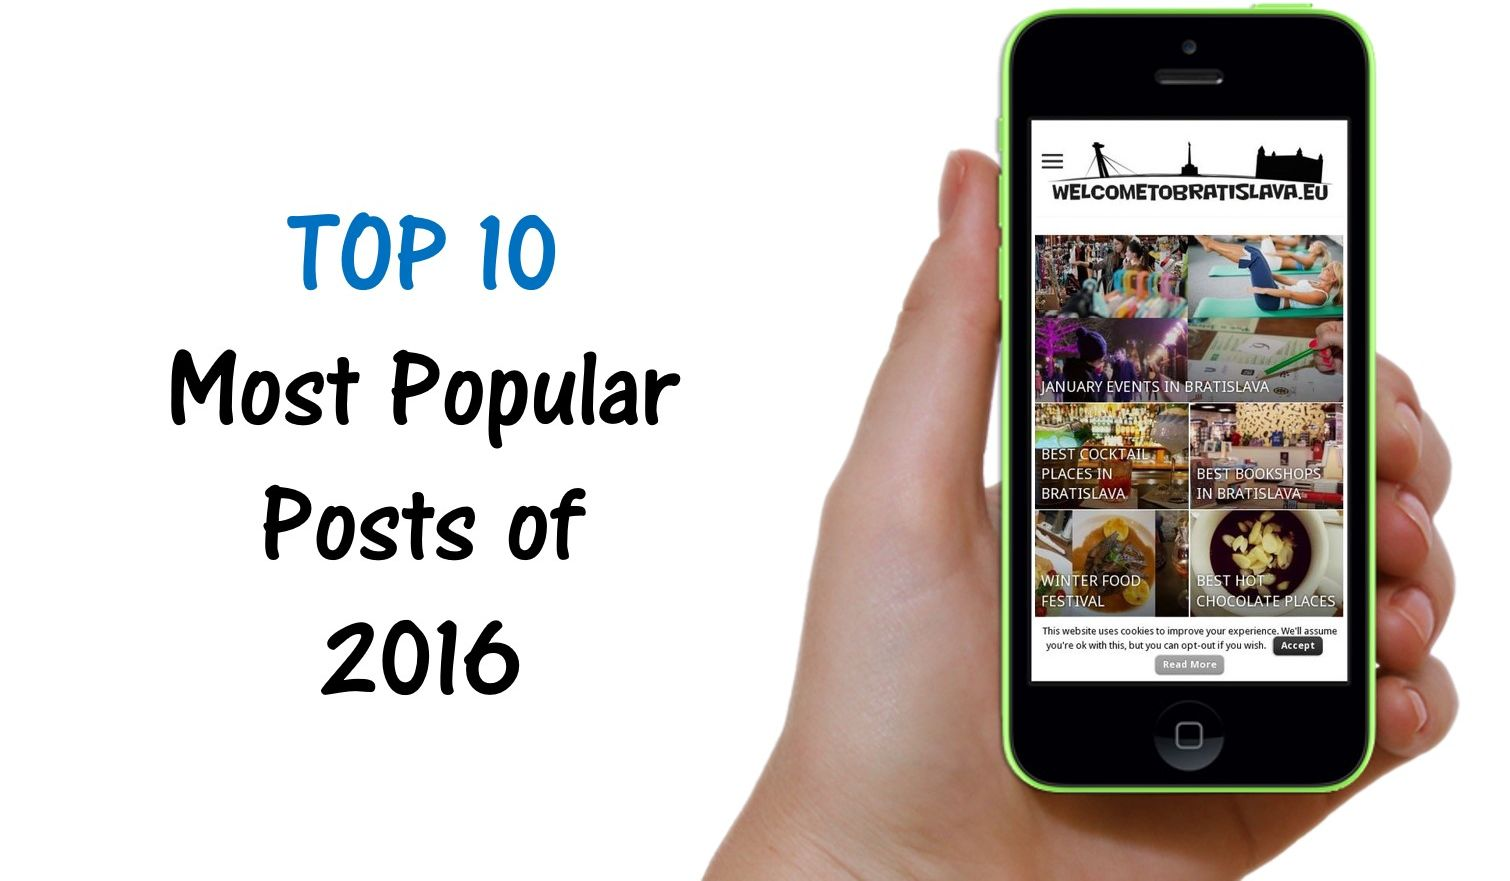 top-10-most-popular-posts_welcometobratislava_2016